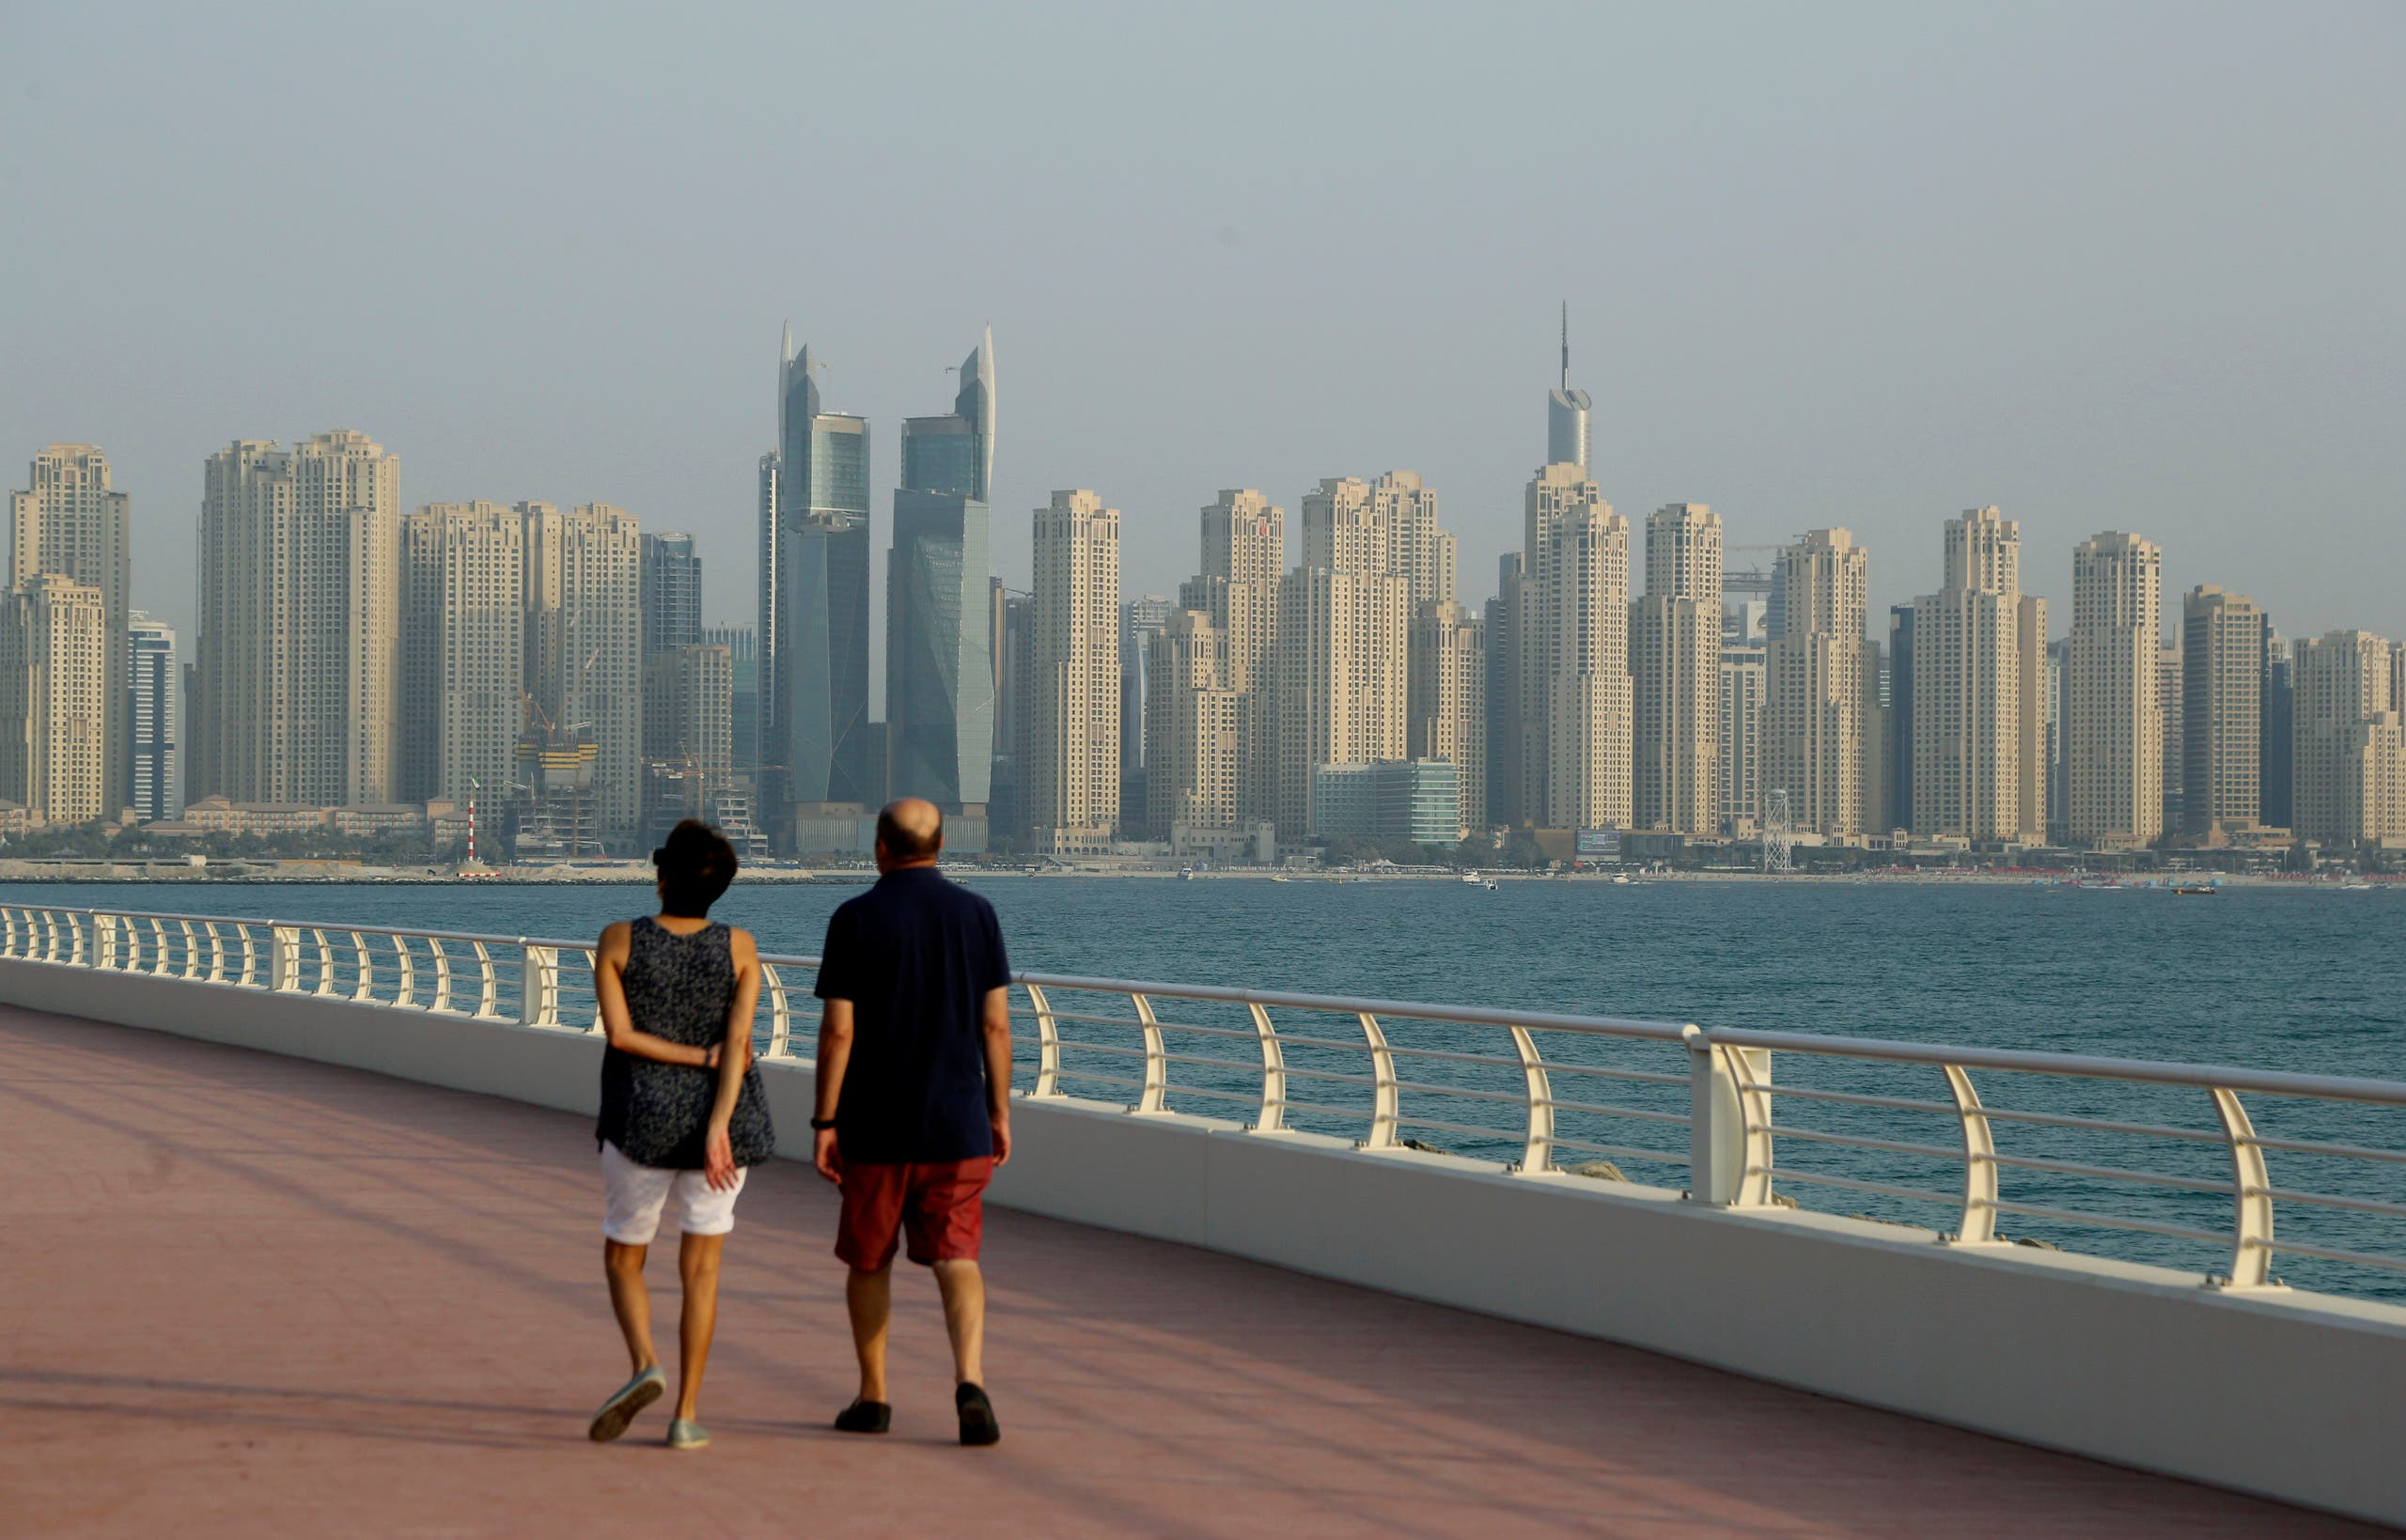 A couple walks at Palm Jumeirah island against the backdrop of Marina Waterfront skyline in Dubai, United Arab Emirates, Saturday, Sept. 22, 2018. (AP Photo)